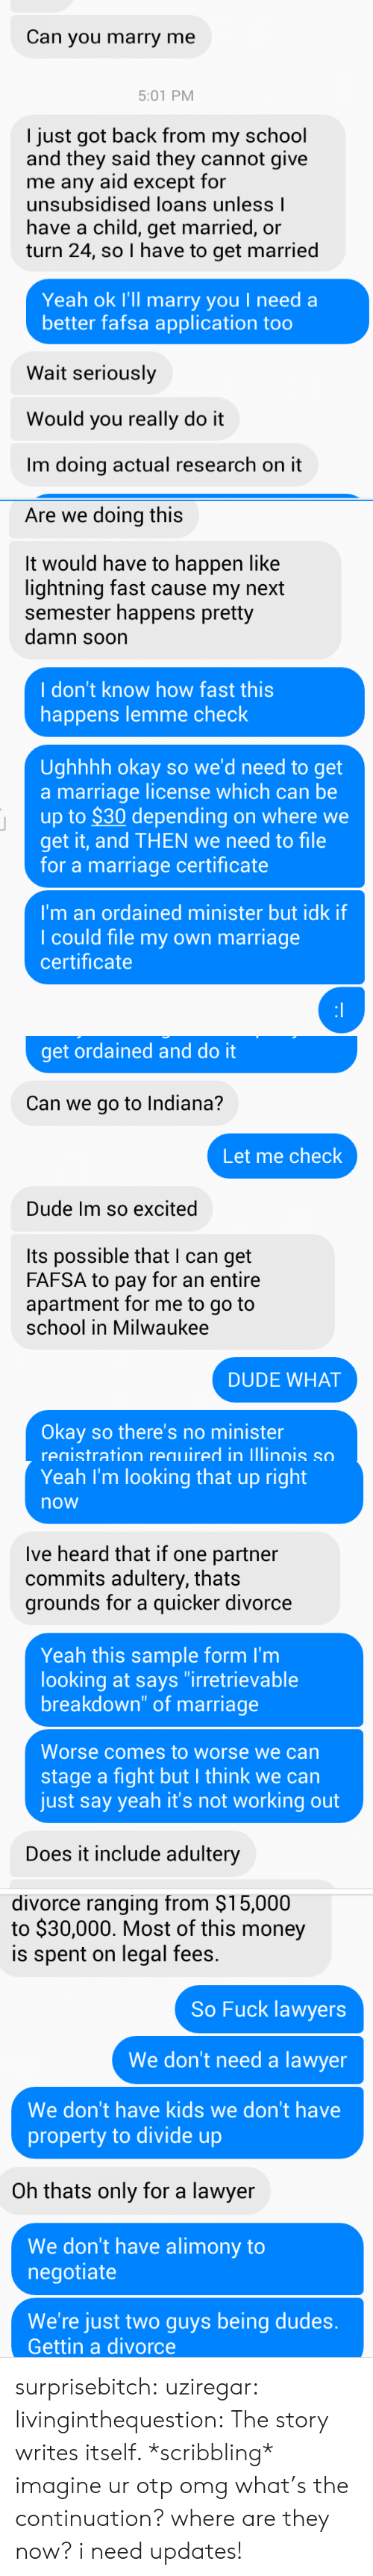 "Dude, Fafsa, and Lawyer: Can you marry me  5:01 PM  I just got back from my school  and they said they cannot give  me any aid except for  unsubsidised loans unless l  have a child, get married, or  turn 24, so I have to get married  Yeah ok I'll marry you I need a  better fafsa application too  Wait seriously  Would you really do it  Im doing actual research on it   Are we doing this  It would have to happen like  lightning fast cause my next  semester happens pretty  damn soon  I don't know how fast this  happens lemme check  Ughhhh okay so we'd need to get  a marriage license which can be  up to $30 depending on where we  get it, and THEN we need to file  for a marriage certificate  I'm an ordained minister but idk if  I could file my own marriage  certificate   get ordained and do it  Can we go to Indiana?  Let me check  Dude Im so excited  Its possible that I can get  FAFSA to pay for an entire  apartment for me to go to  school in Milwaukee  DUDE WHAT  Okay so there's no minister  registration required in lllinois so   Yeah I'm looking that up right  now  Ive heard that if one partner  commits adultery, thats  grounds for a quicker divorce  Yeah this sample form I'm  looking at says ""irretrievable  breakdown"" of marriage  Worse comes to worse we can  stage a fight but I think we can  just say yeah it's not working out  Does it include adultery   divorce ranging from $15,000  to $30,000. Most of this money  is spent on legal fees.  So Fuck lawyers  We don't need a lawyer  We don't have kids we don't have  property to divide up  Oh thats only for a lawyer  We don't have alimony to  negotiate  We're just two guys being dudes.  Gettin a divorce surprisebitch: uziregar:  livinginthequestion:  The story writes itself. *scribbling*  imagine ur otp  omg what's the continuation? where are they now? i need updates!"